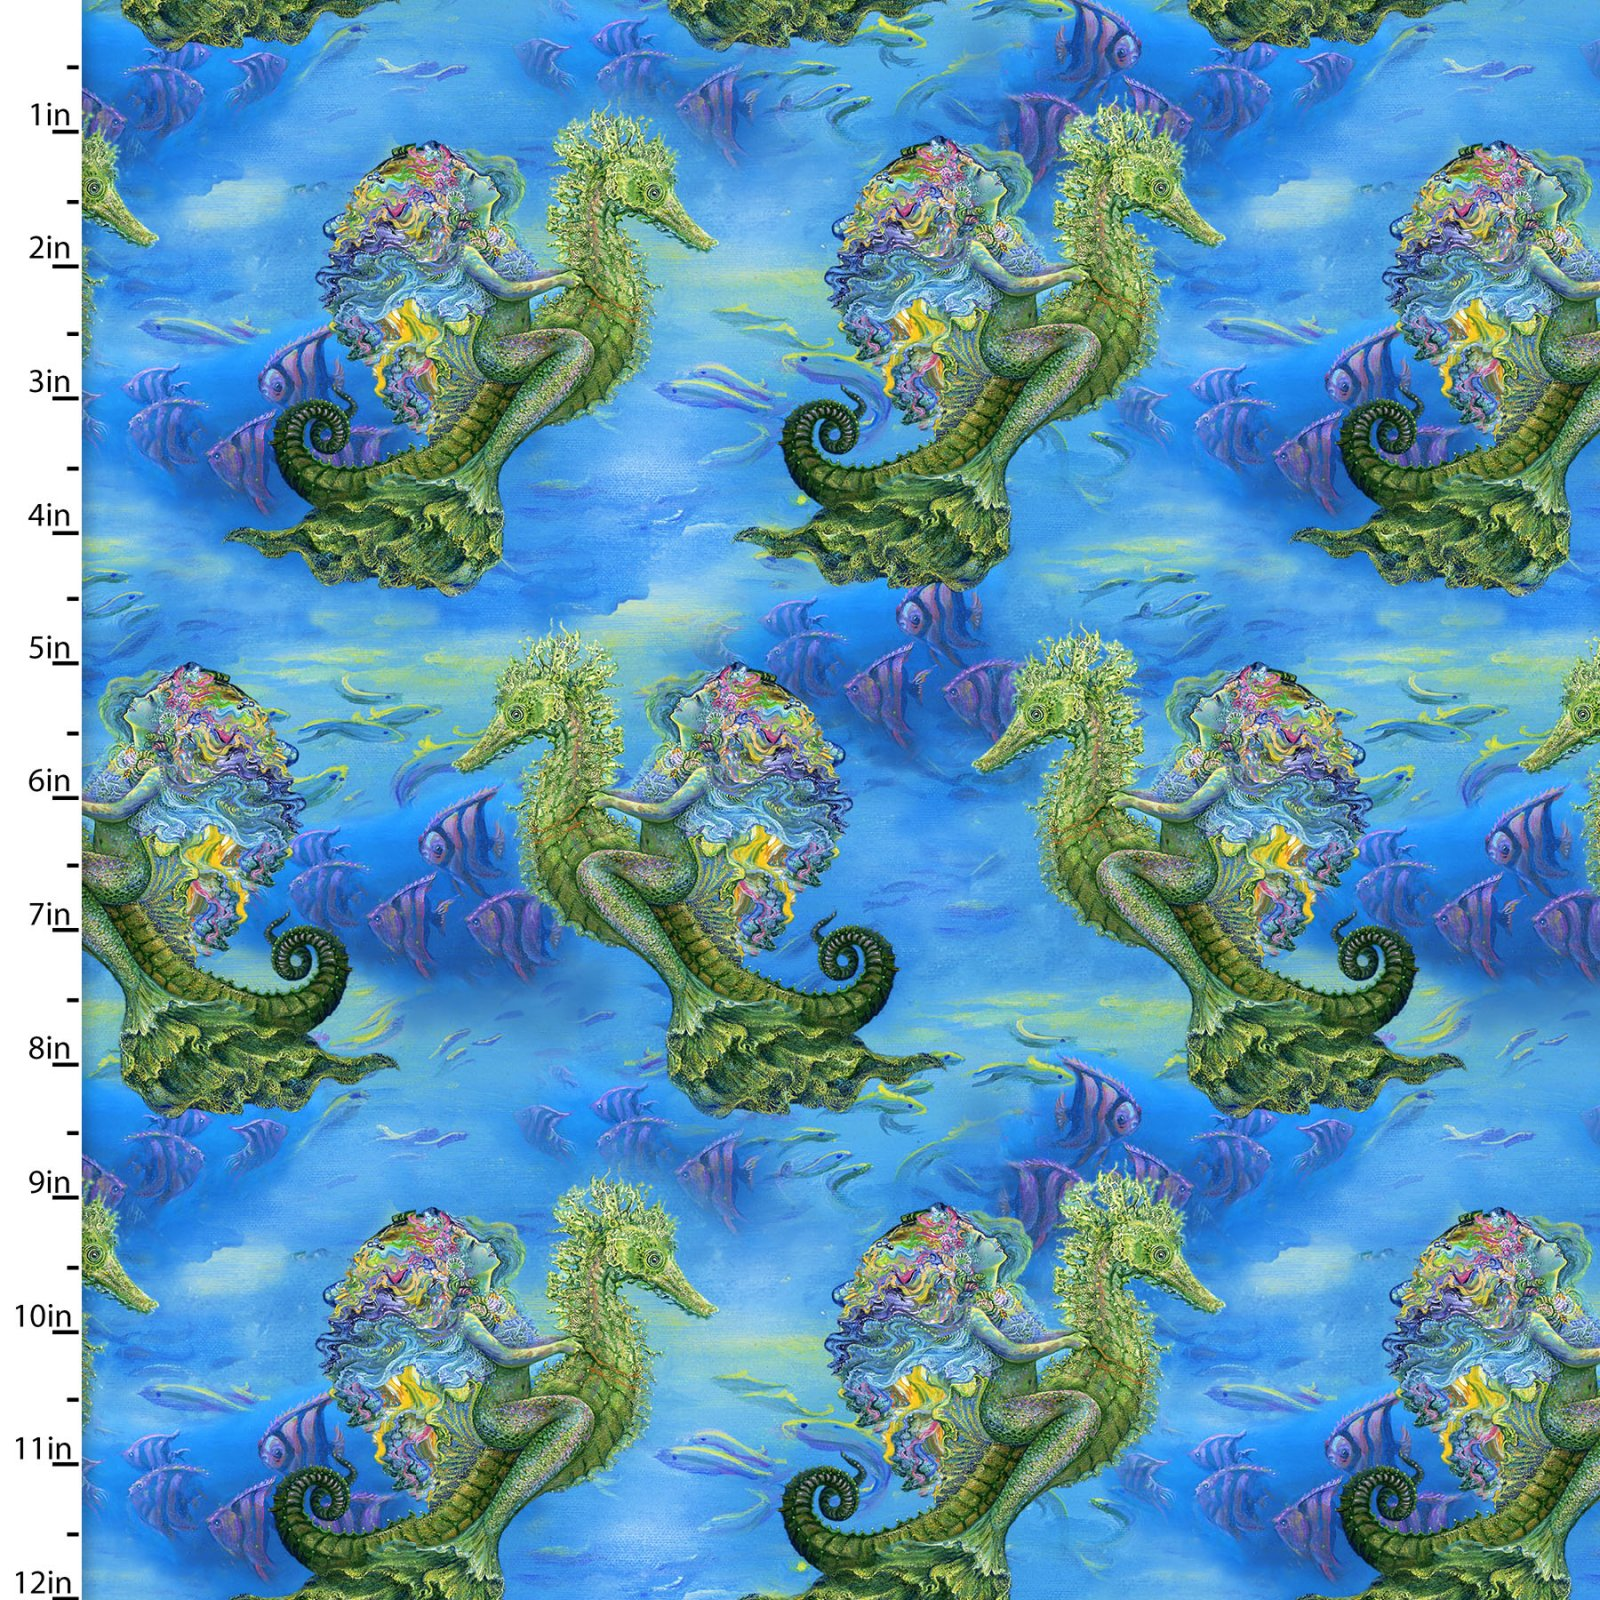 3 Wishes Fabric for Independent Shops Mystic Ocean by Josephine Wall